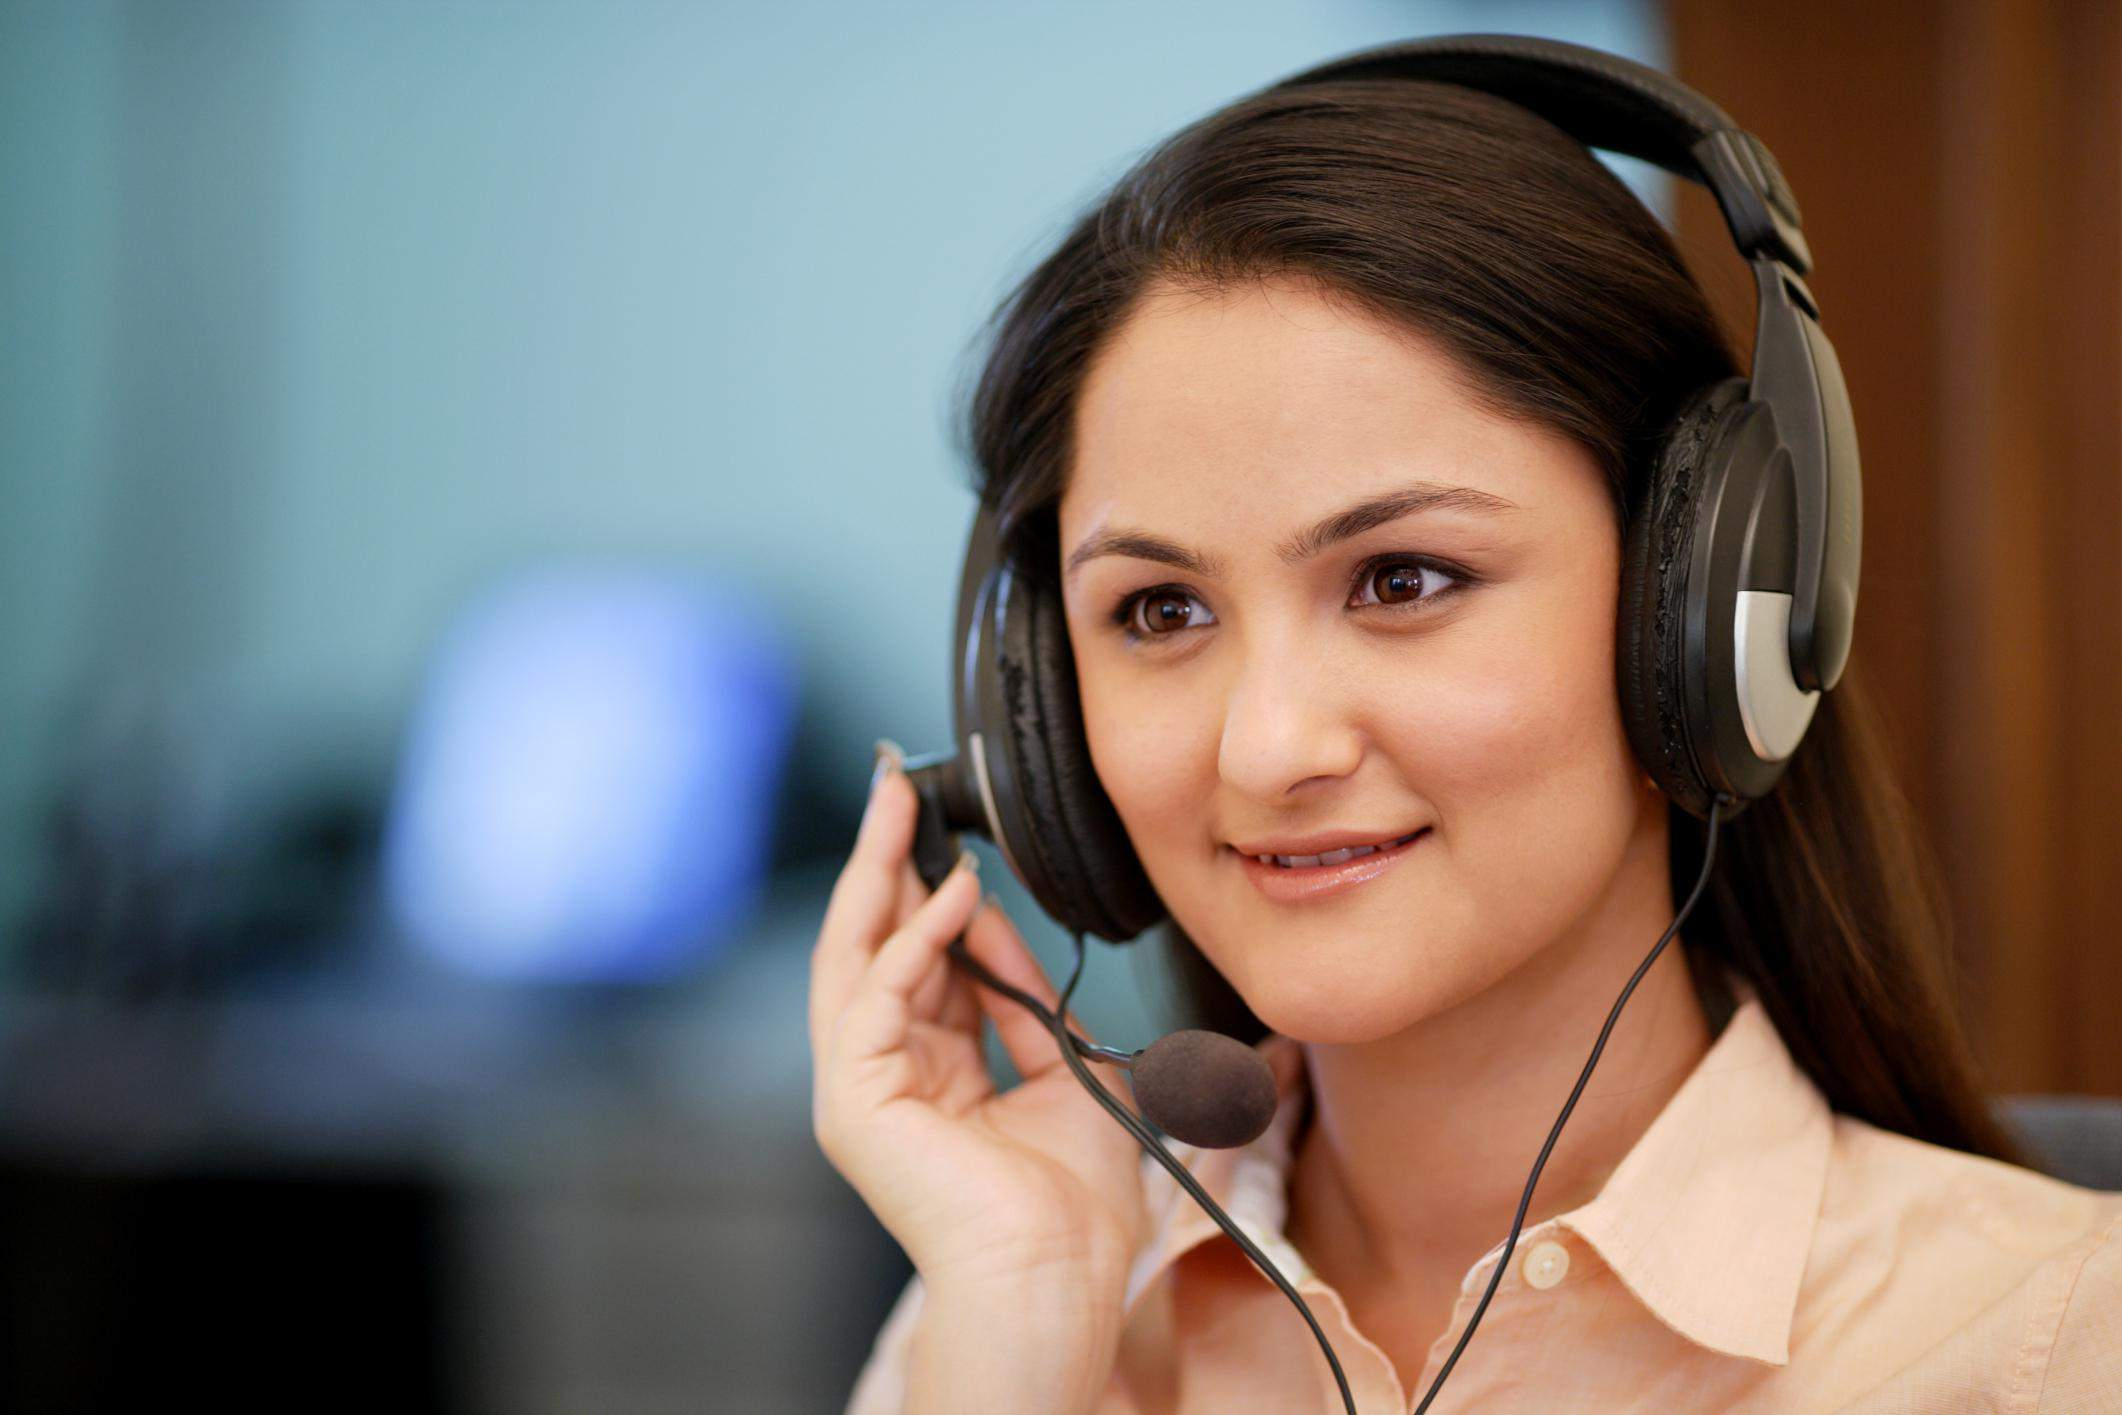 Call center firms now hire U.S. workers in their homes